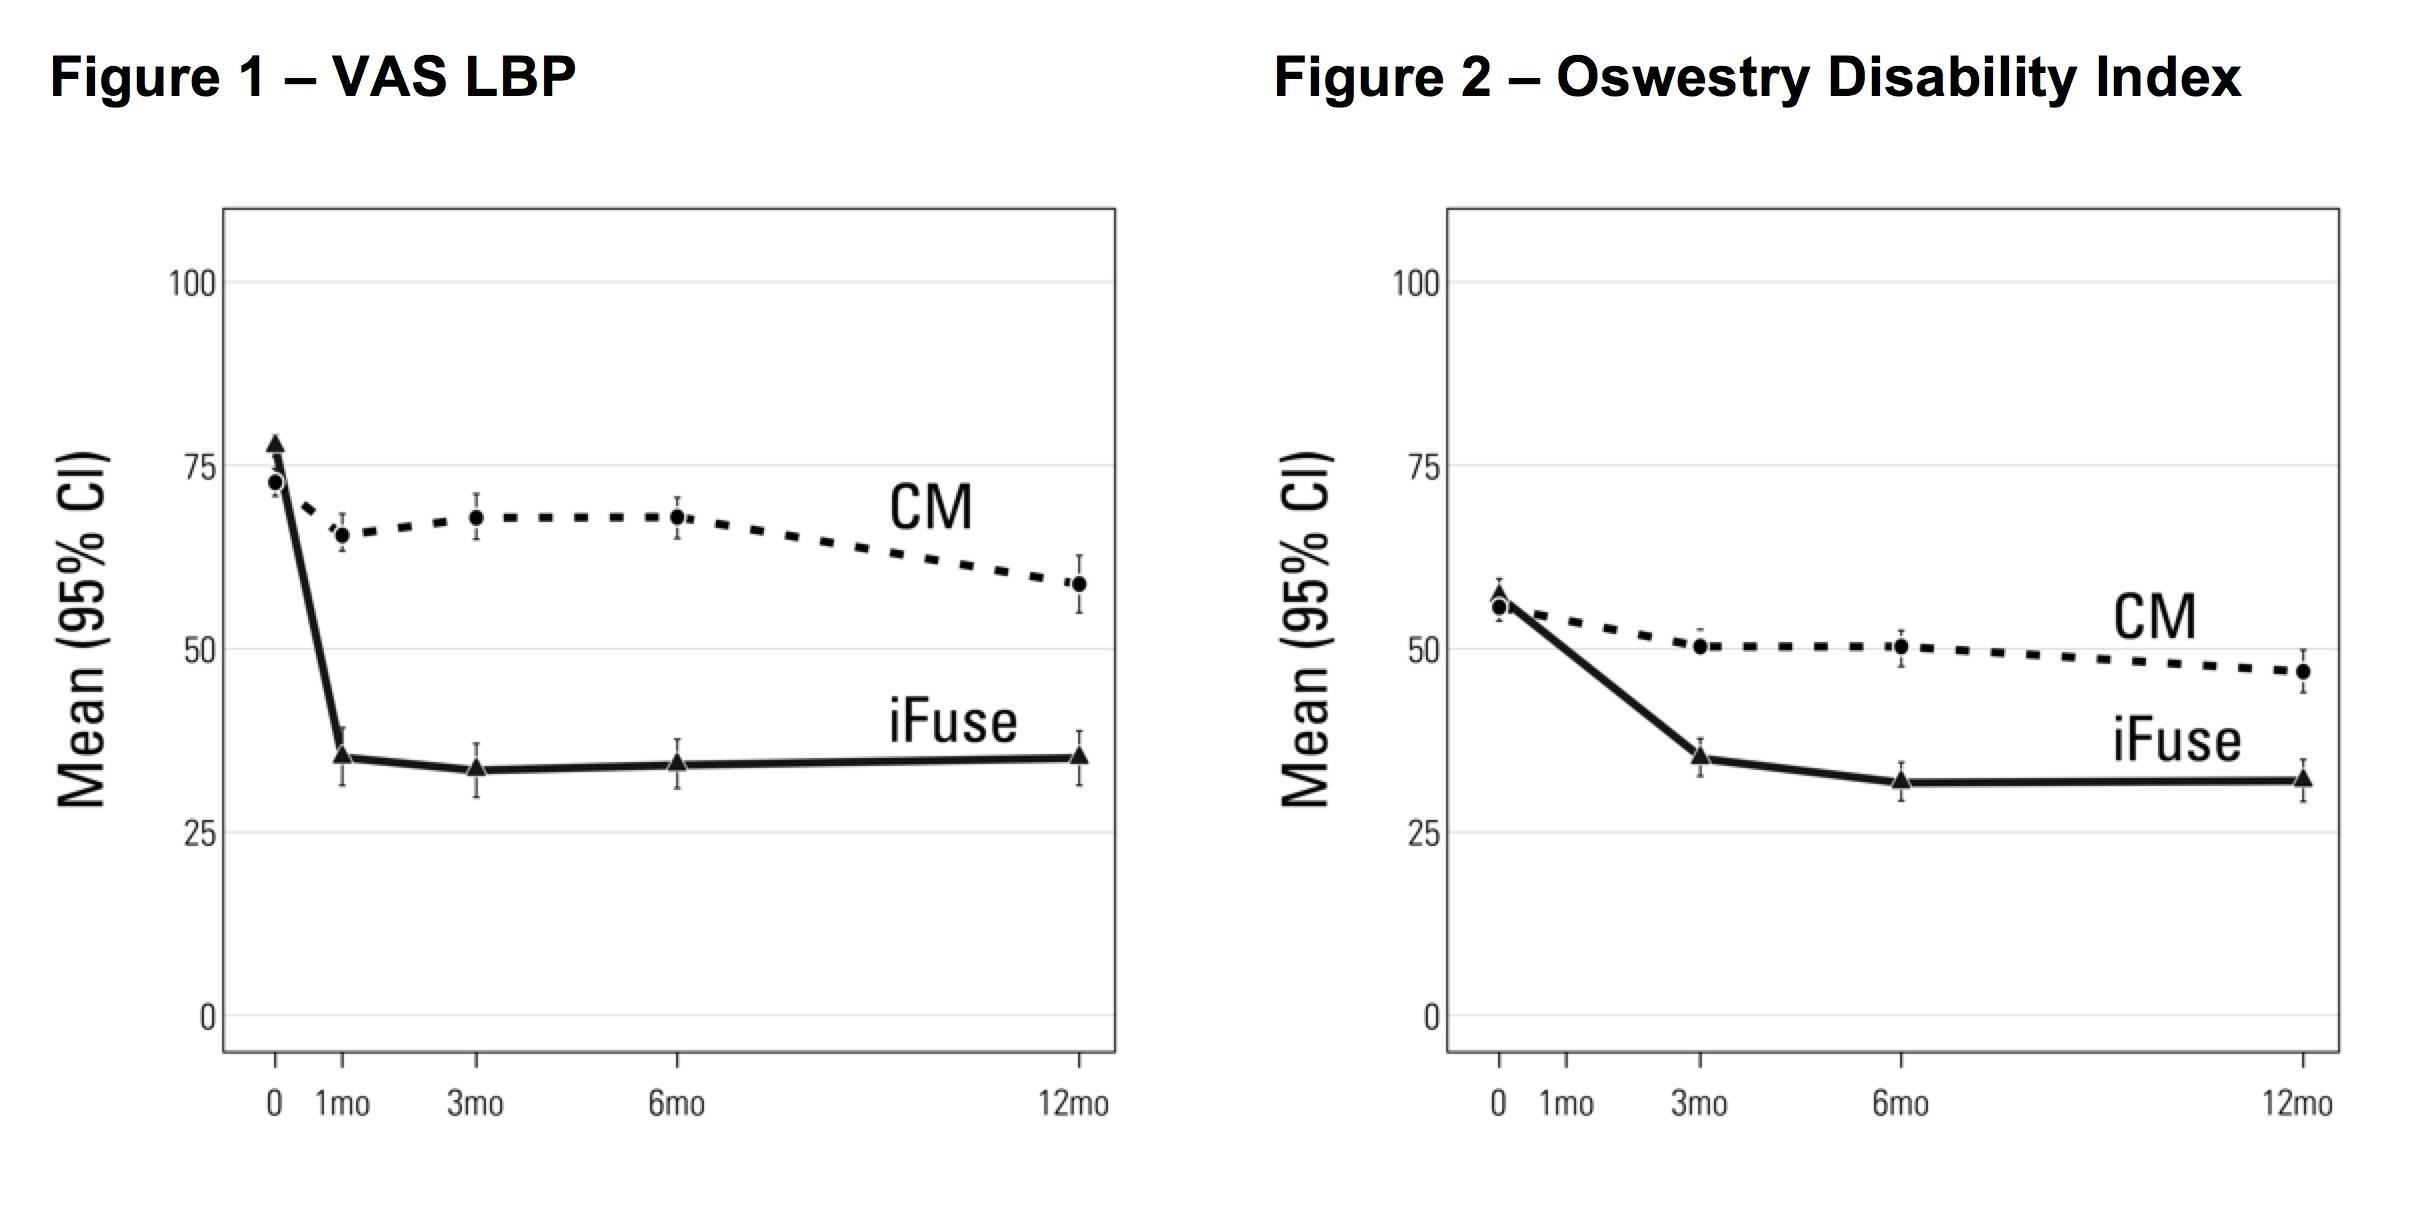 Figure 1 – VAS LBP; Figure 2 – Oswestry Disability Index